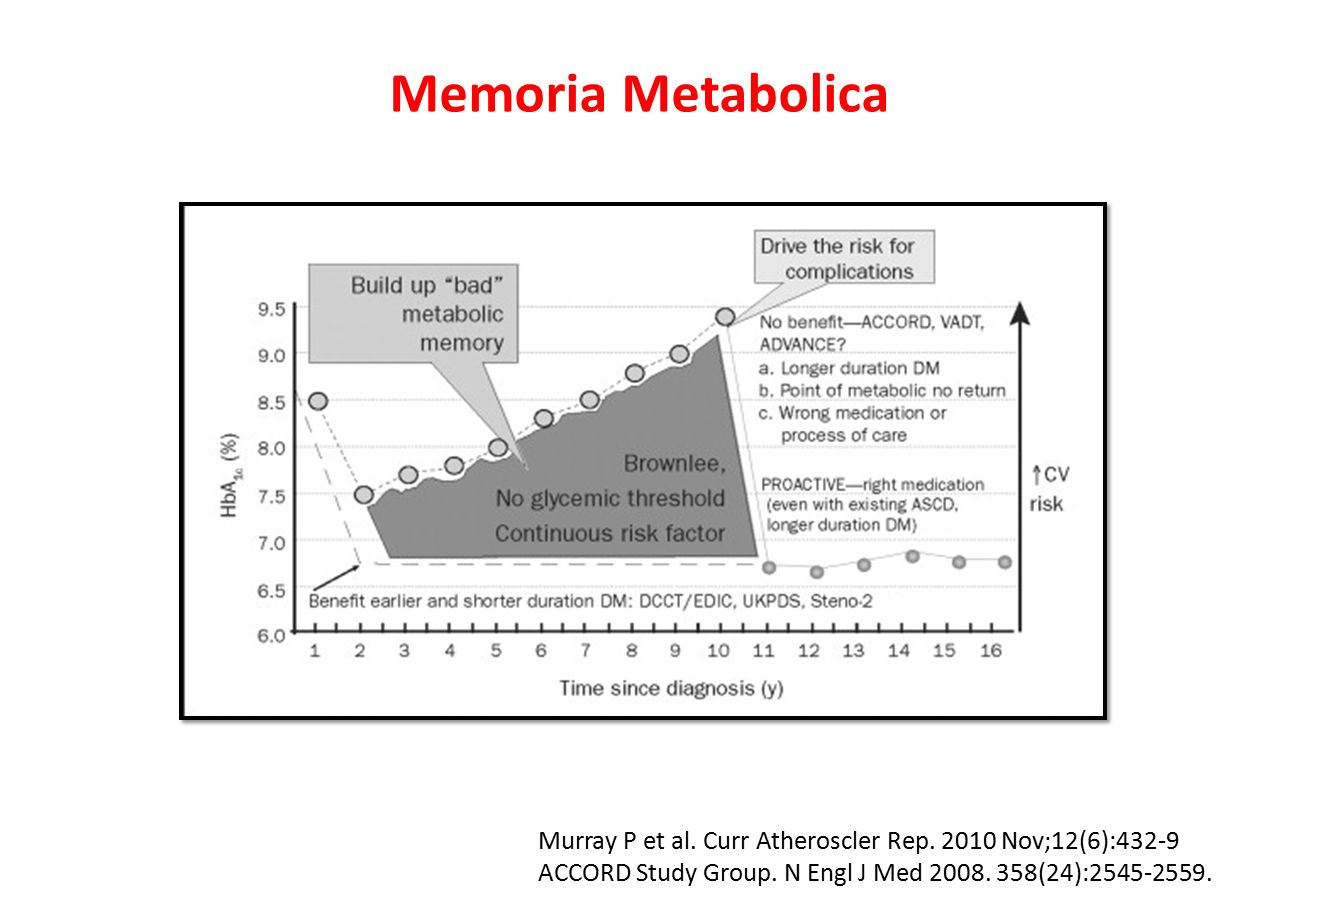 Memoria Metabolica Murray P et al. Curr Atheroscler Rep. 2010 Nov;12(6):432-9 ACCORD Study Group. N Engl J Med 2008. 358(24):2545-2559.